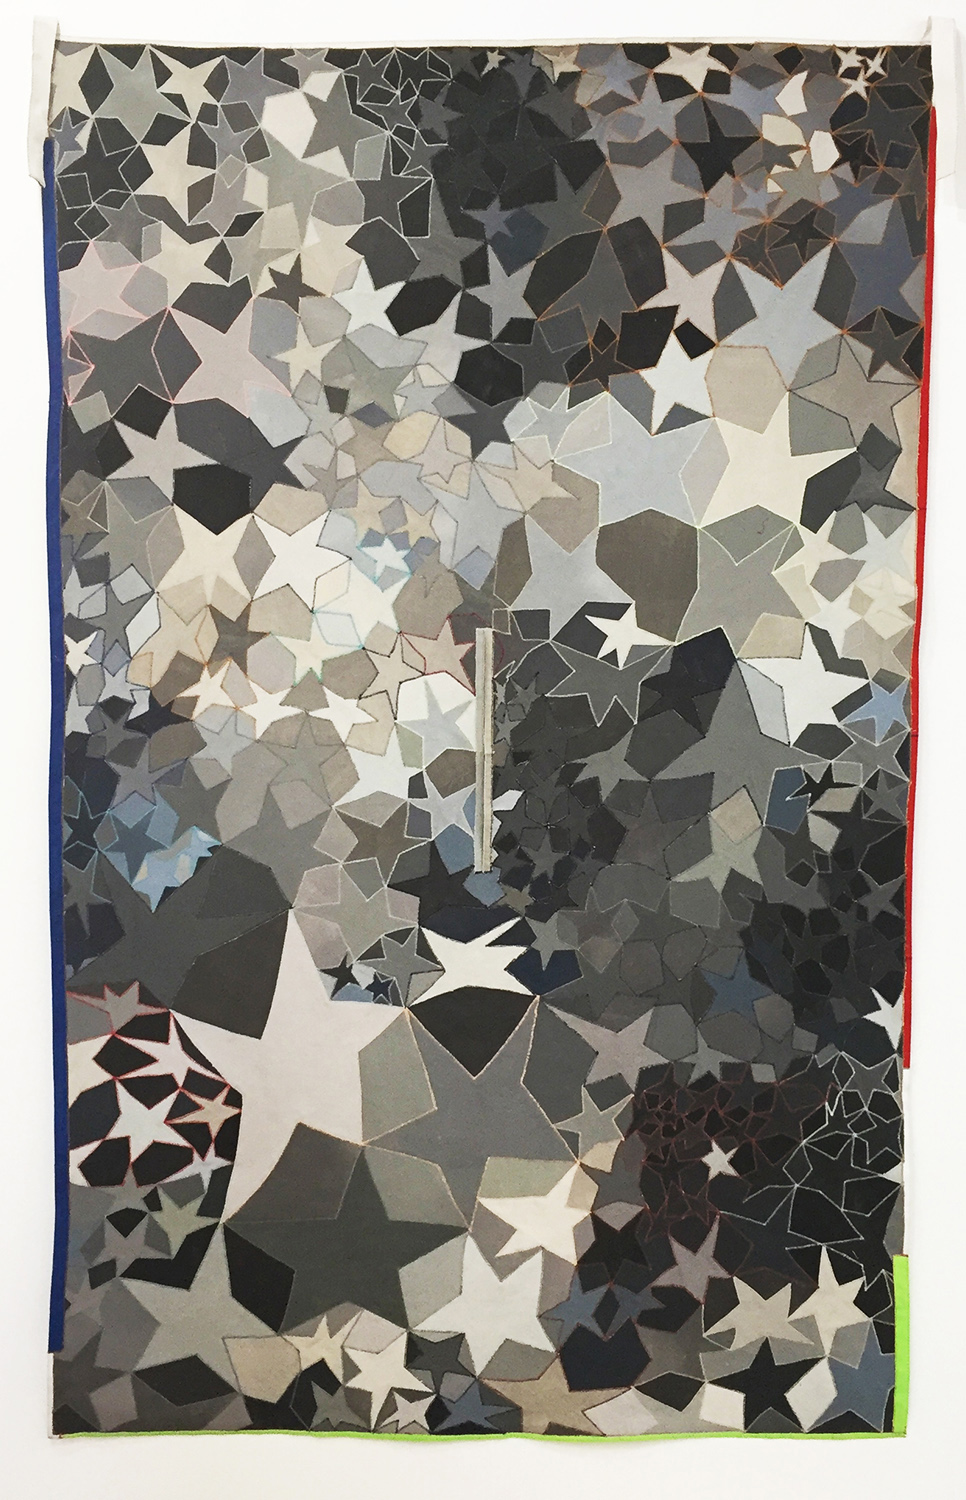 Poncho no 5, 2014    paint on canvas, sewing thread    93 1/2 x 58 1/4 in.